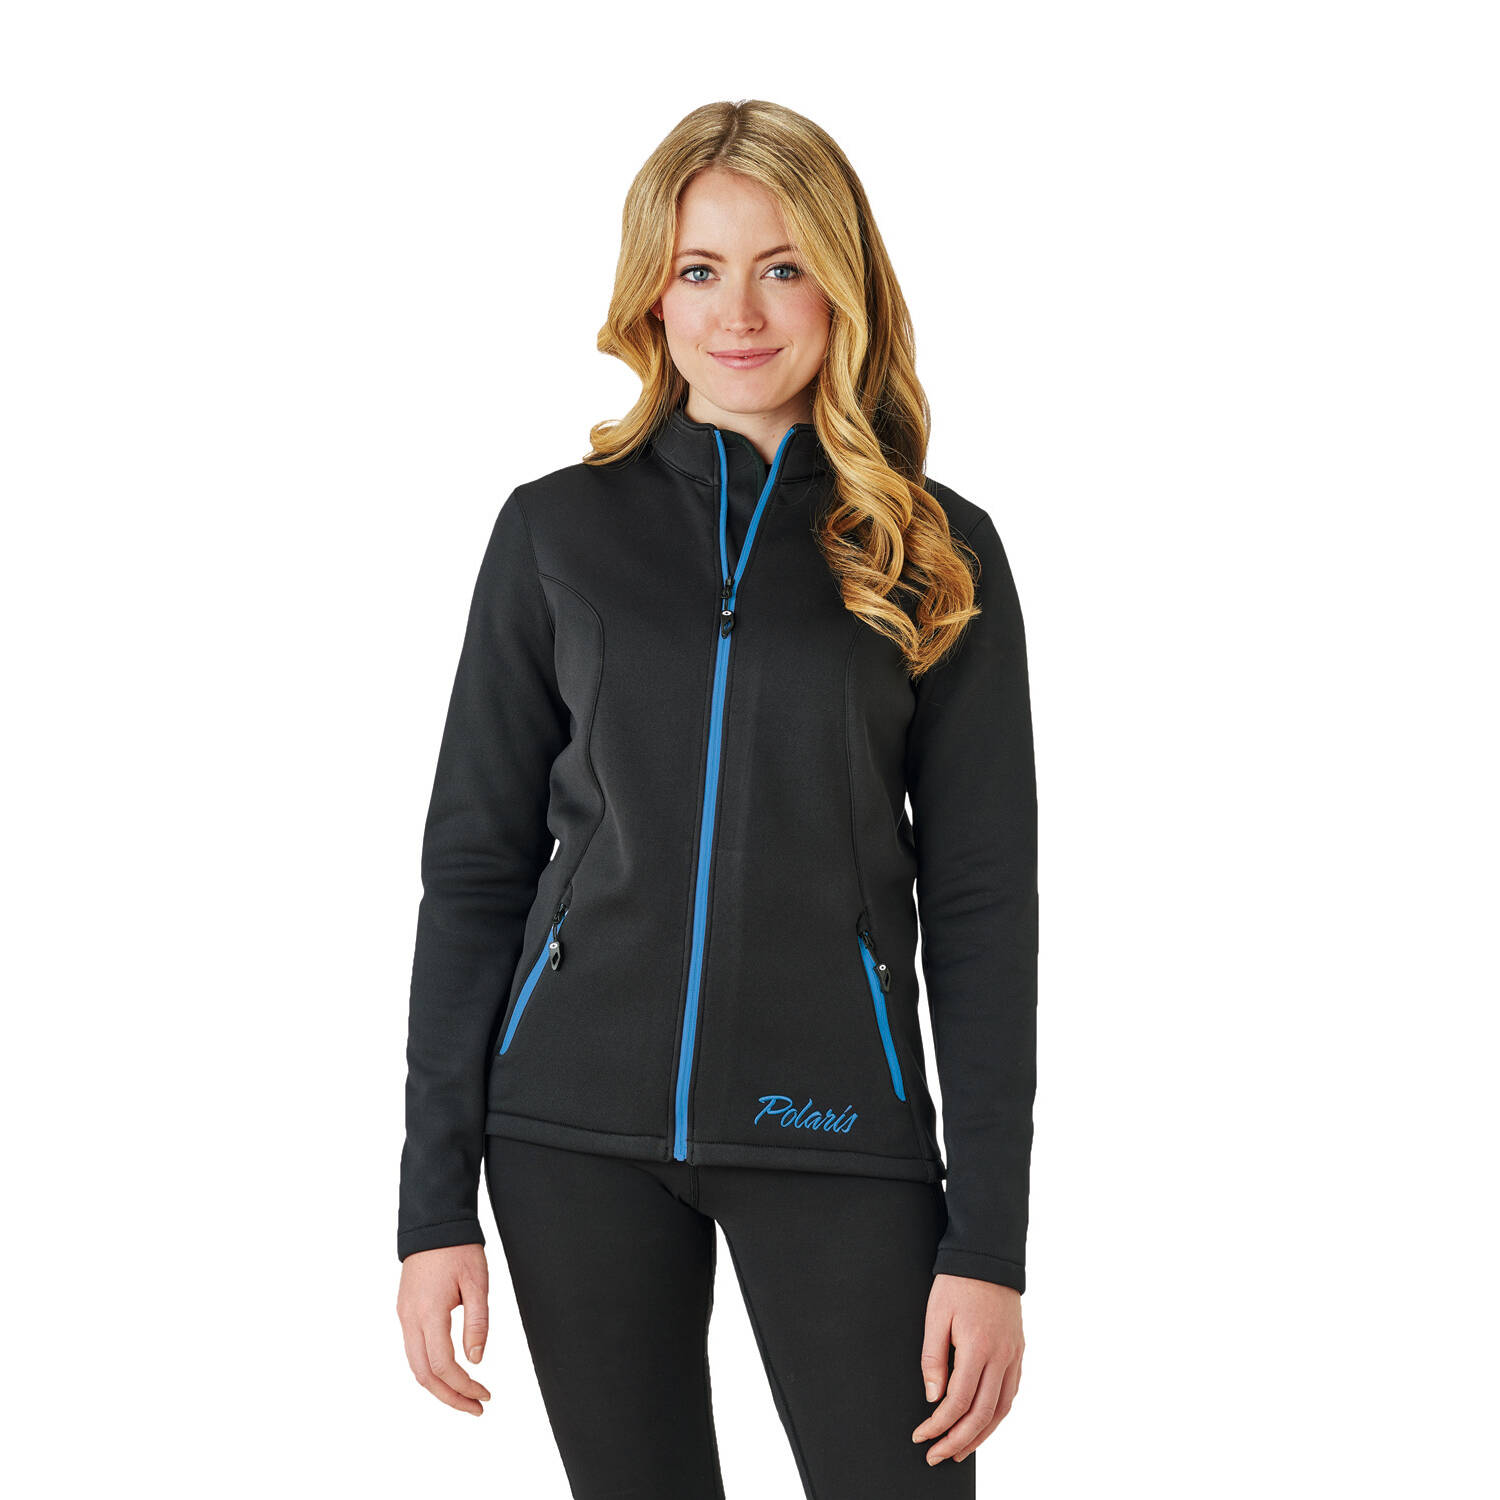 Women's Full-Zip Mid Layer Jacket with Blue Polaris® Logo, Black